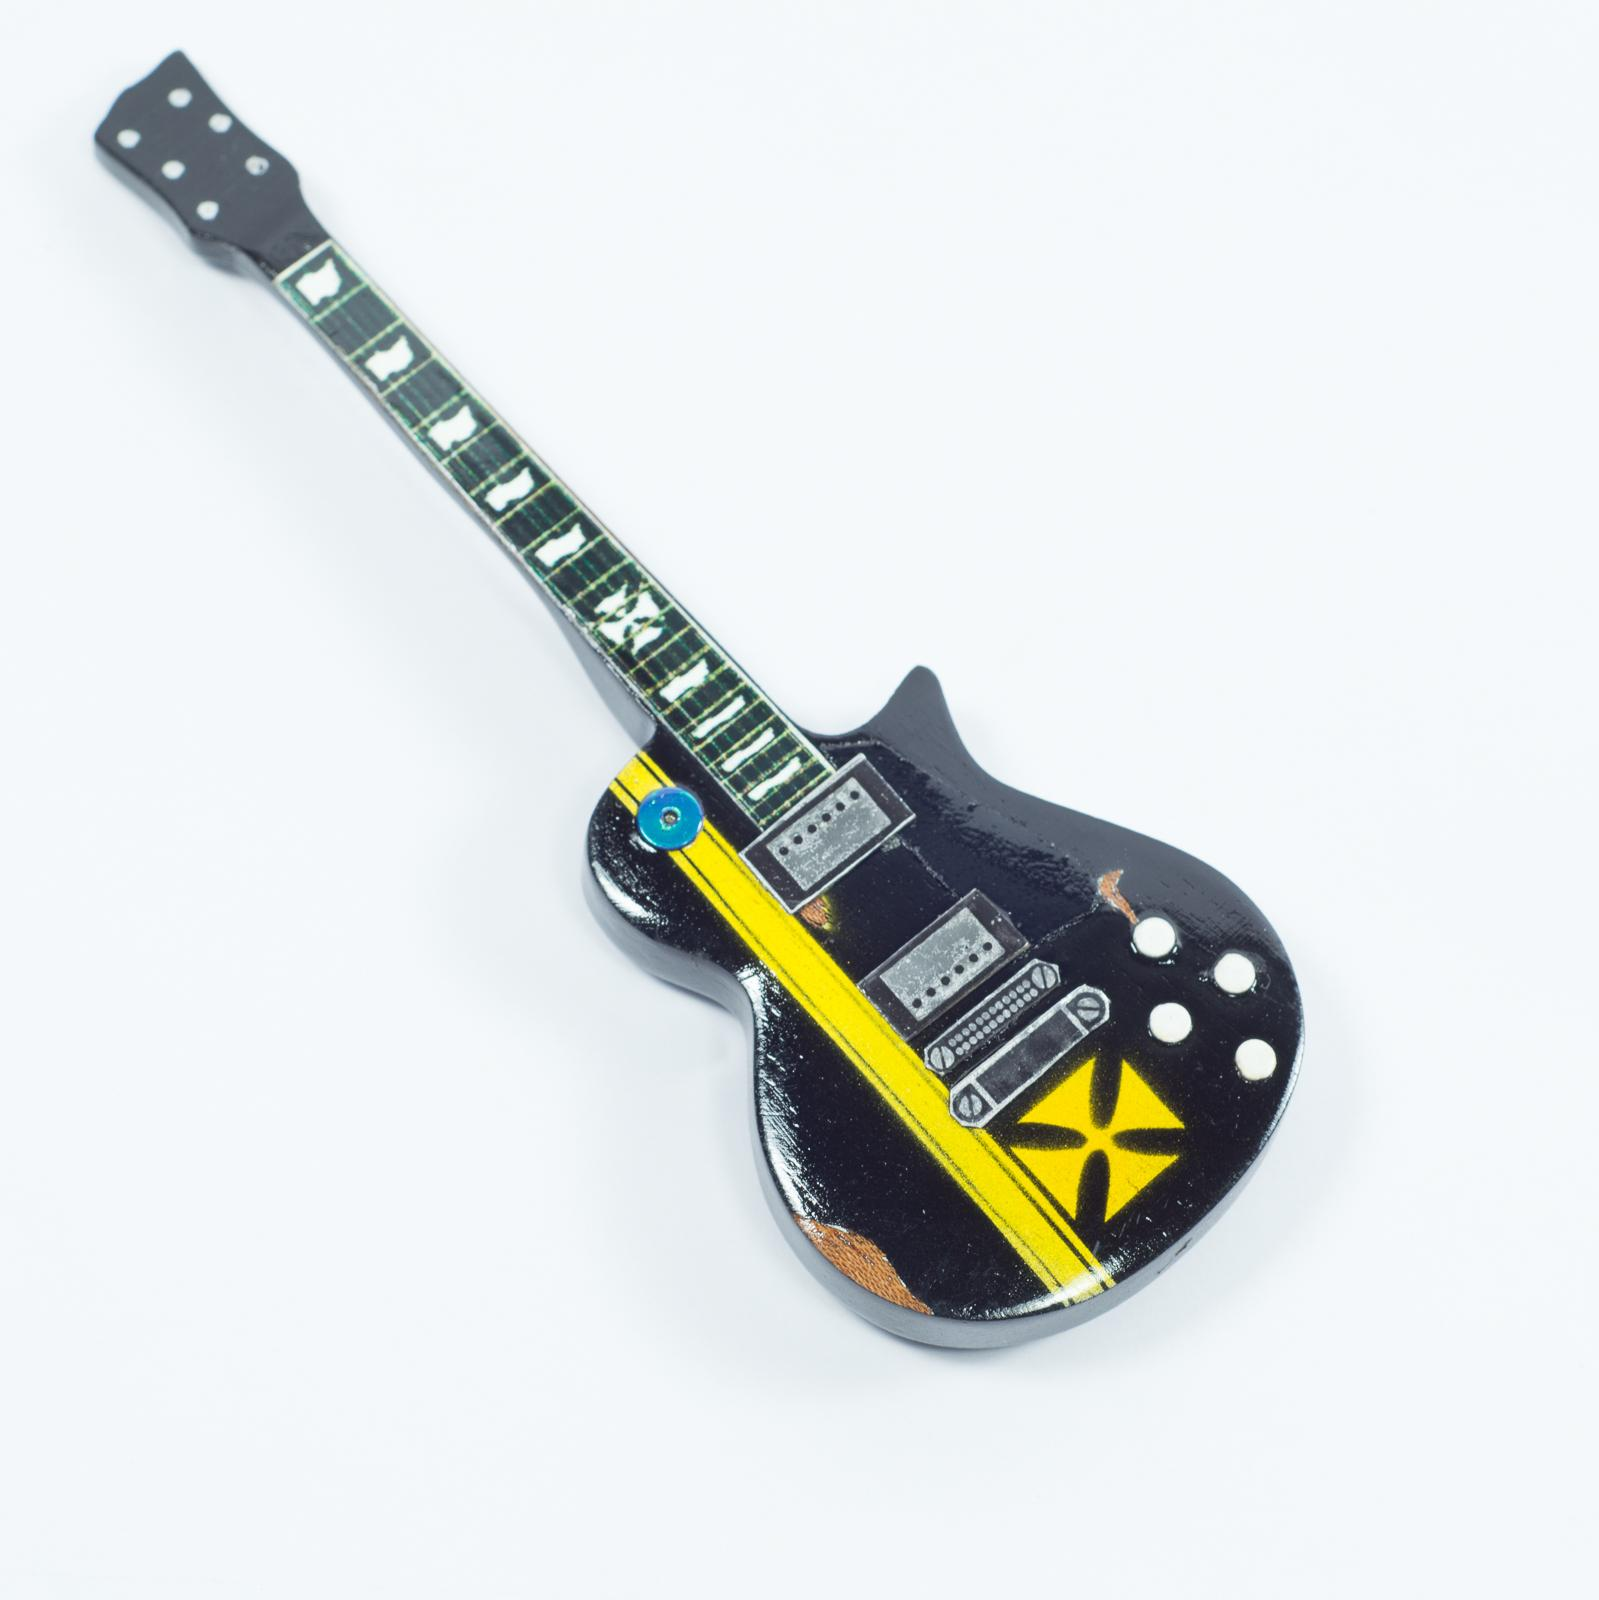 Guitar Shaped Magnet For Fridge - Metallica - James Hetfield - Iron Cross